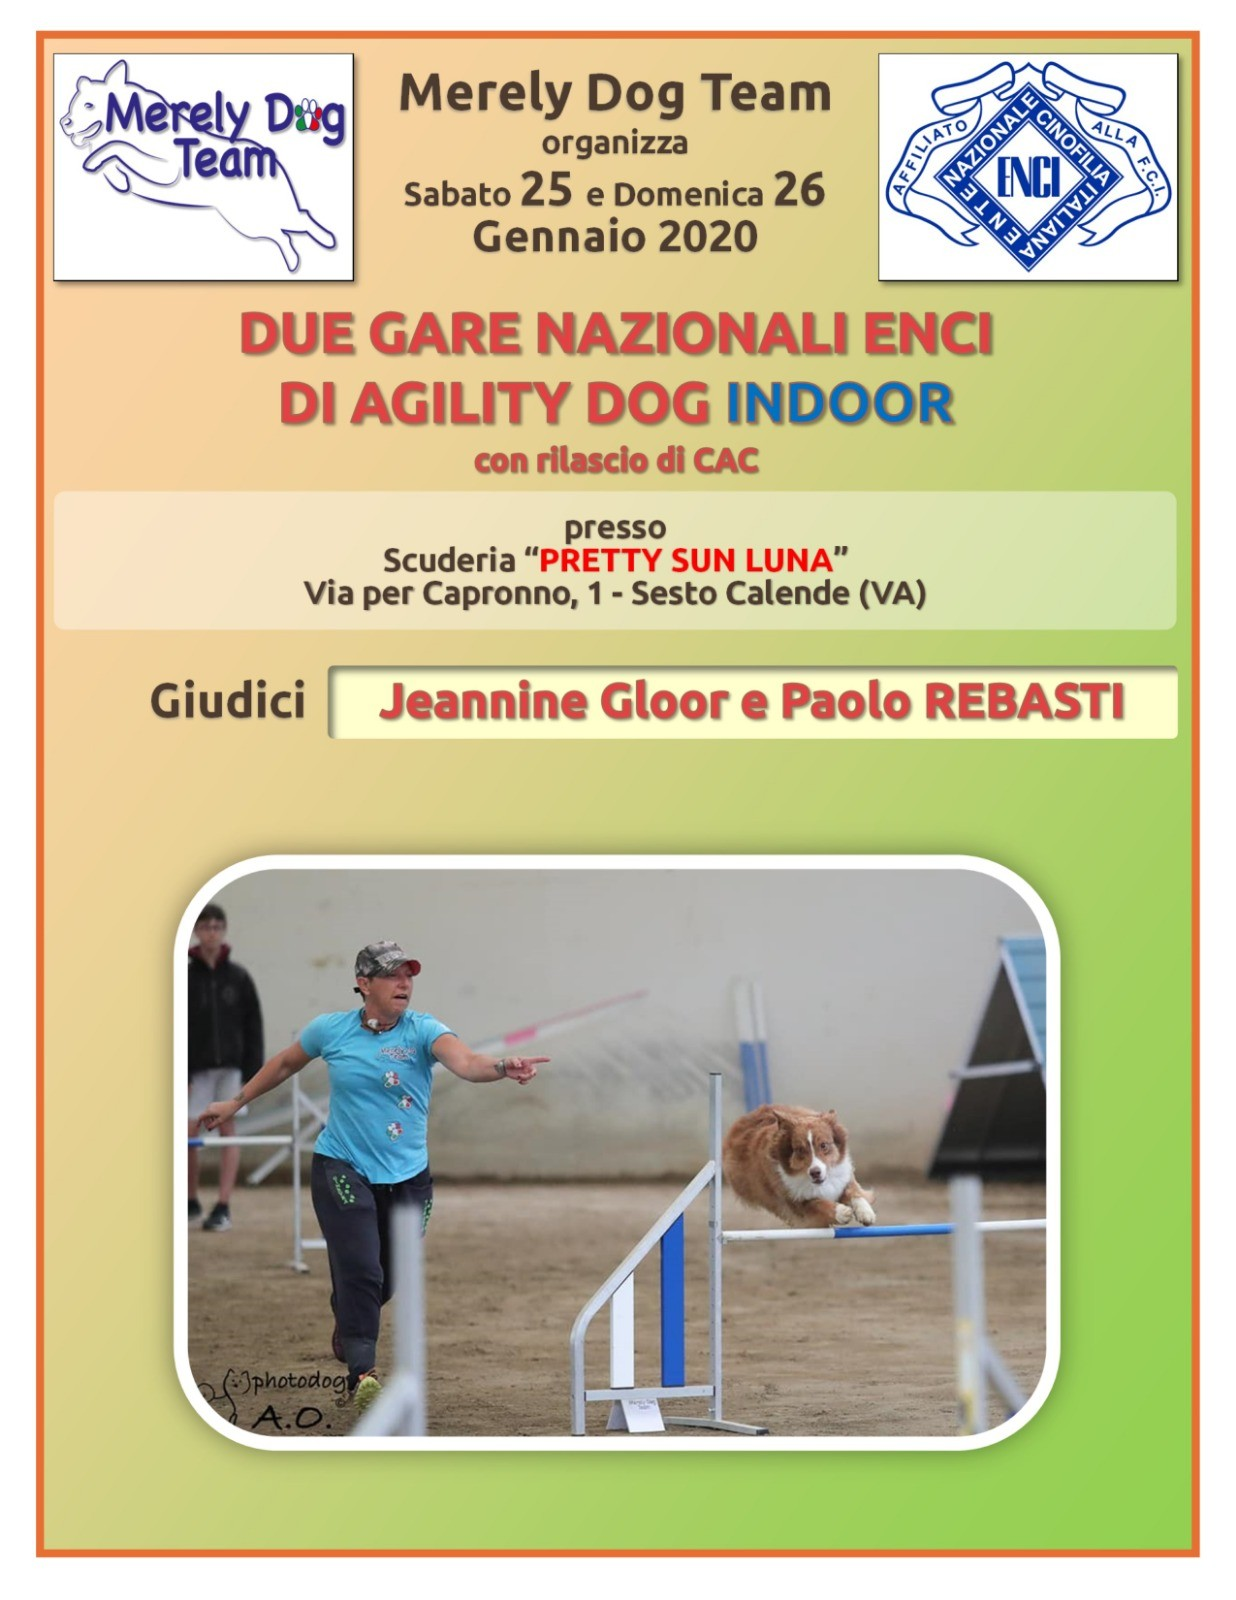 25 Gennaio Merely Dog Team